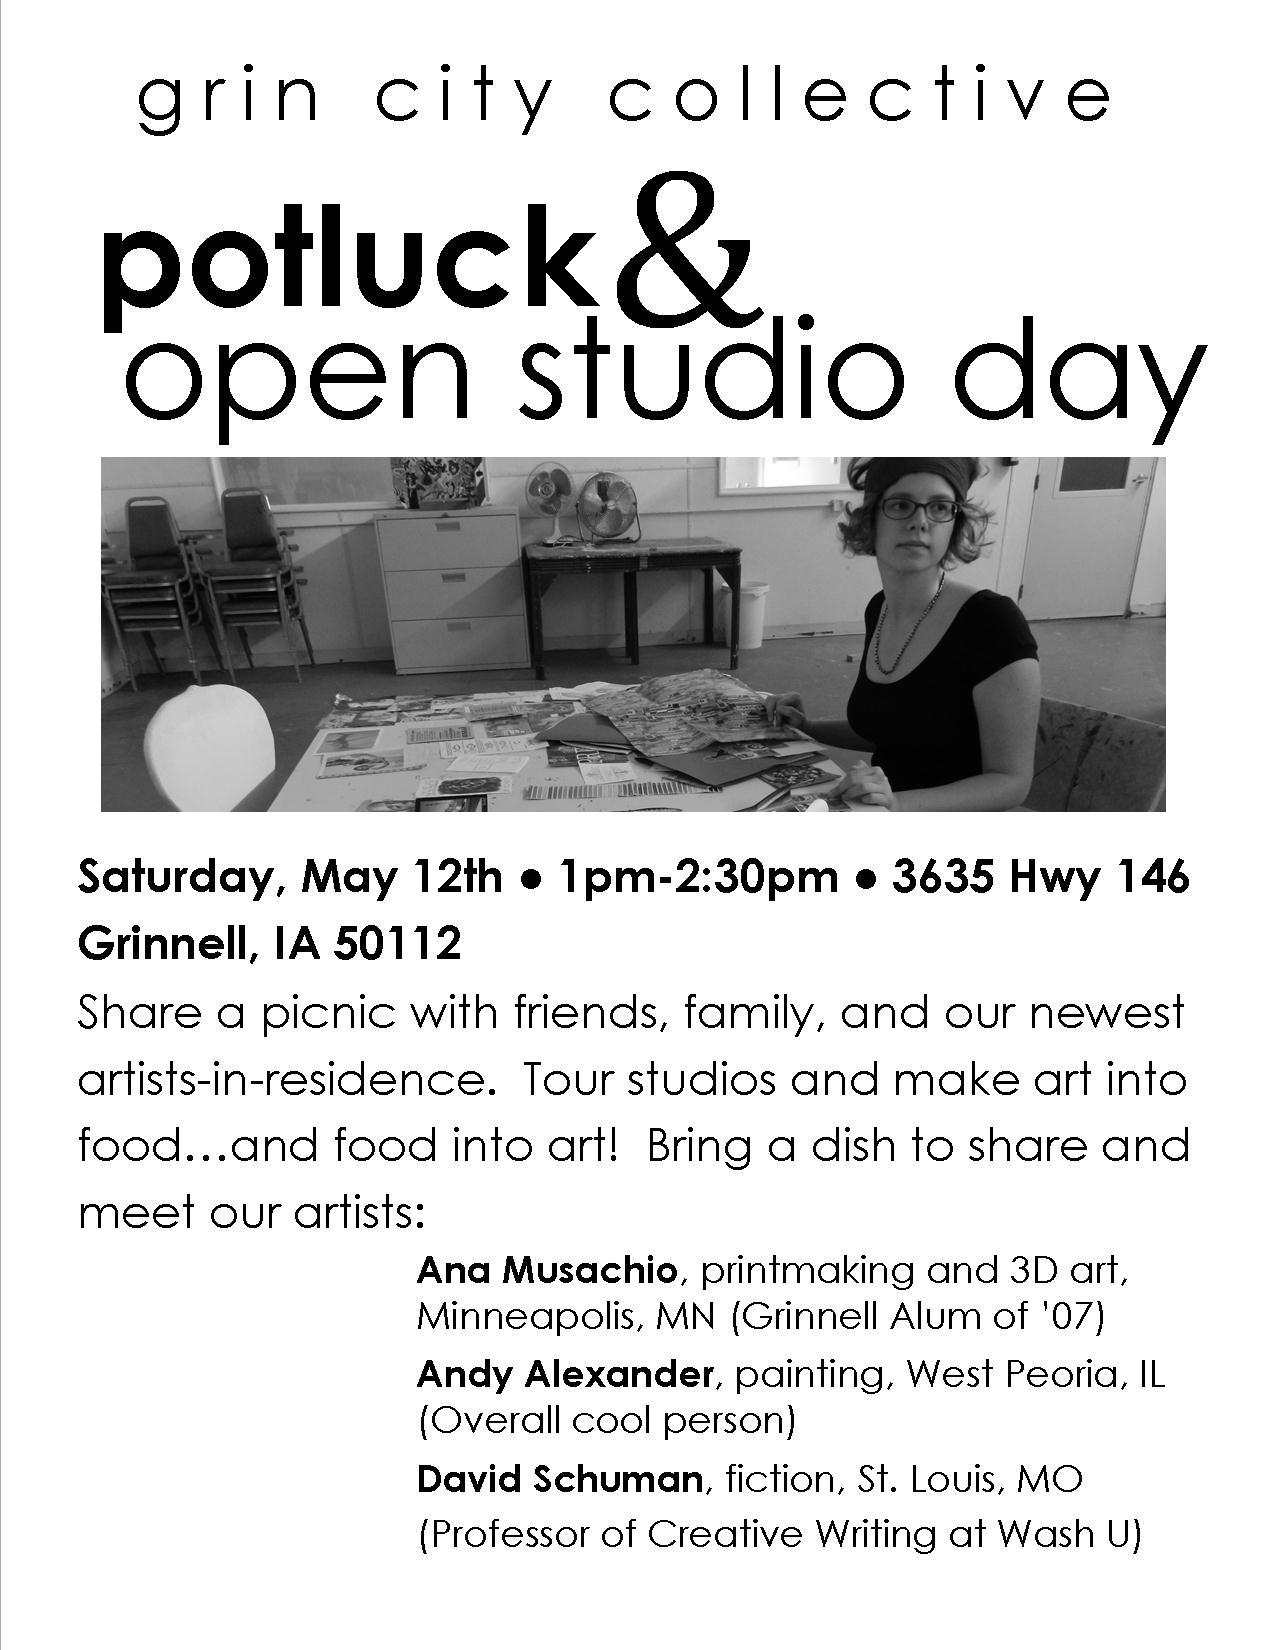 JOIN THE CITIZENS OF GRIN CITY COLLECTIVE THIS SATURDAY FOR A POTLUCK AND OPEN STUDIO DAY.